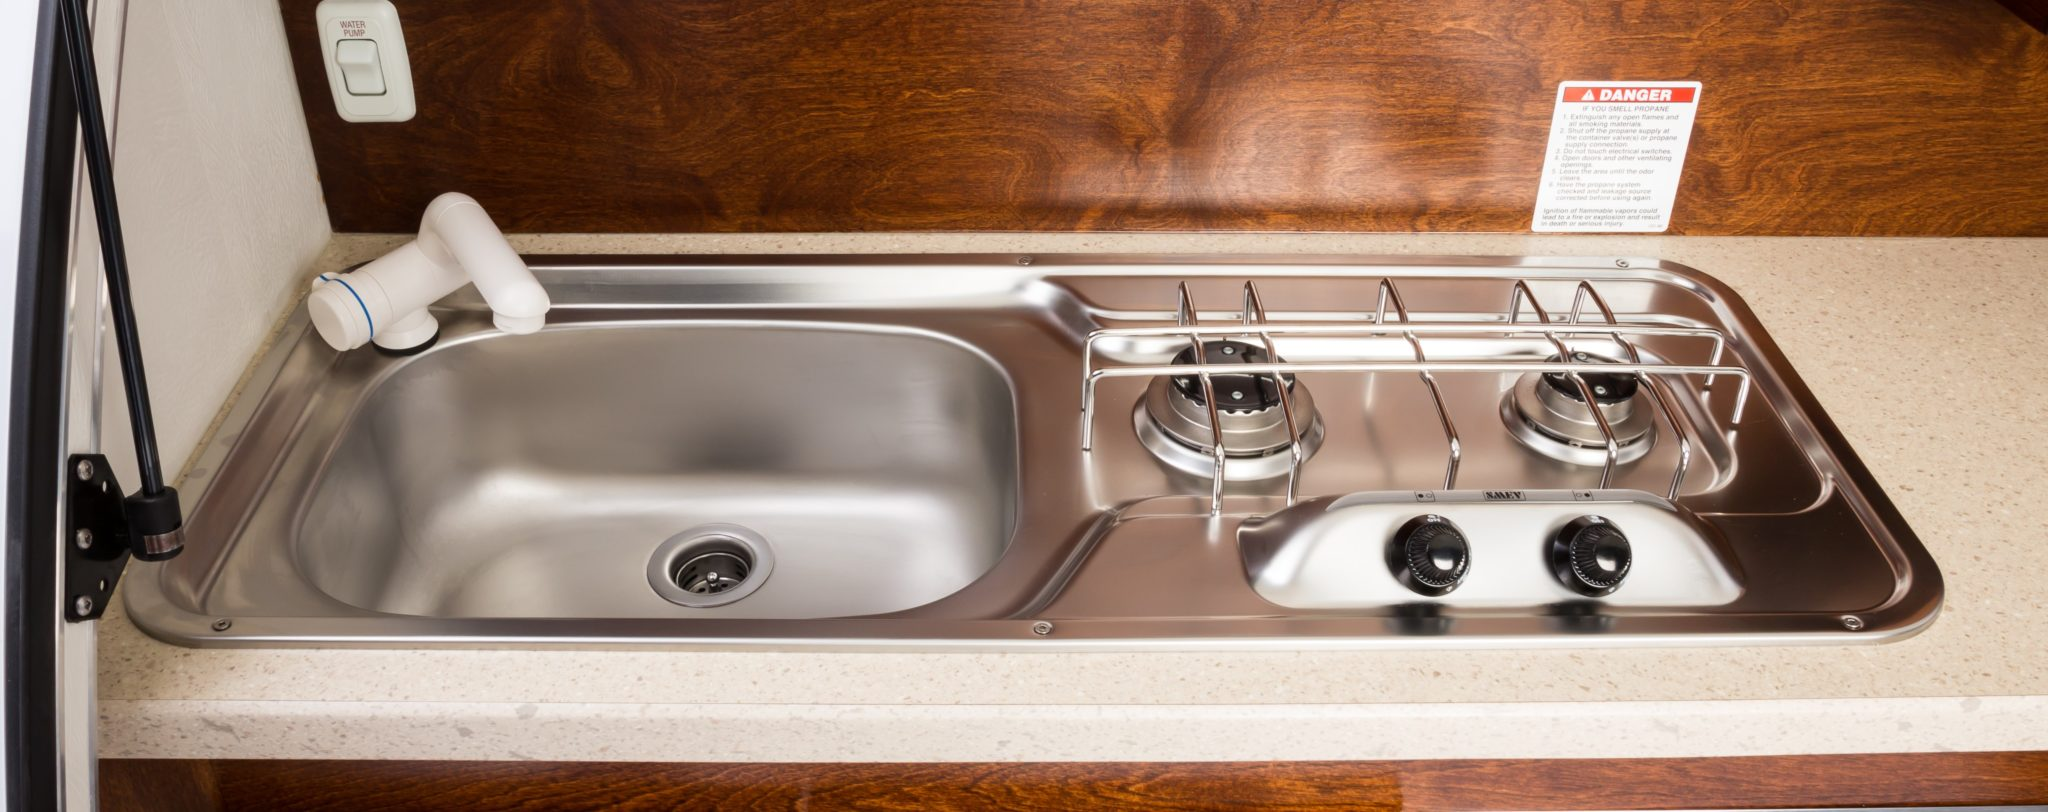 2-top Sink and Stove combo in TAG trailer